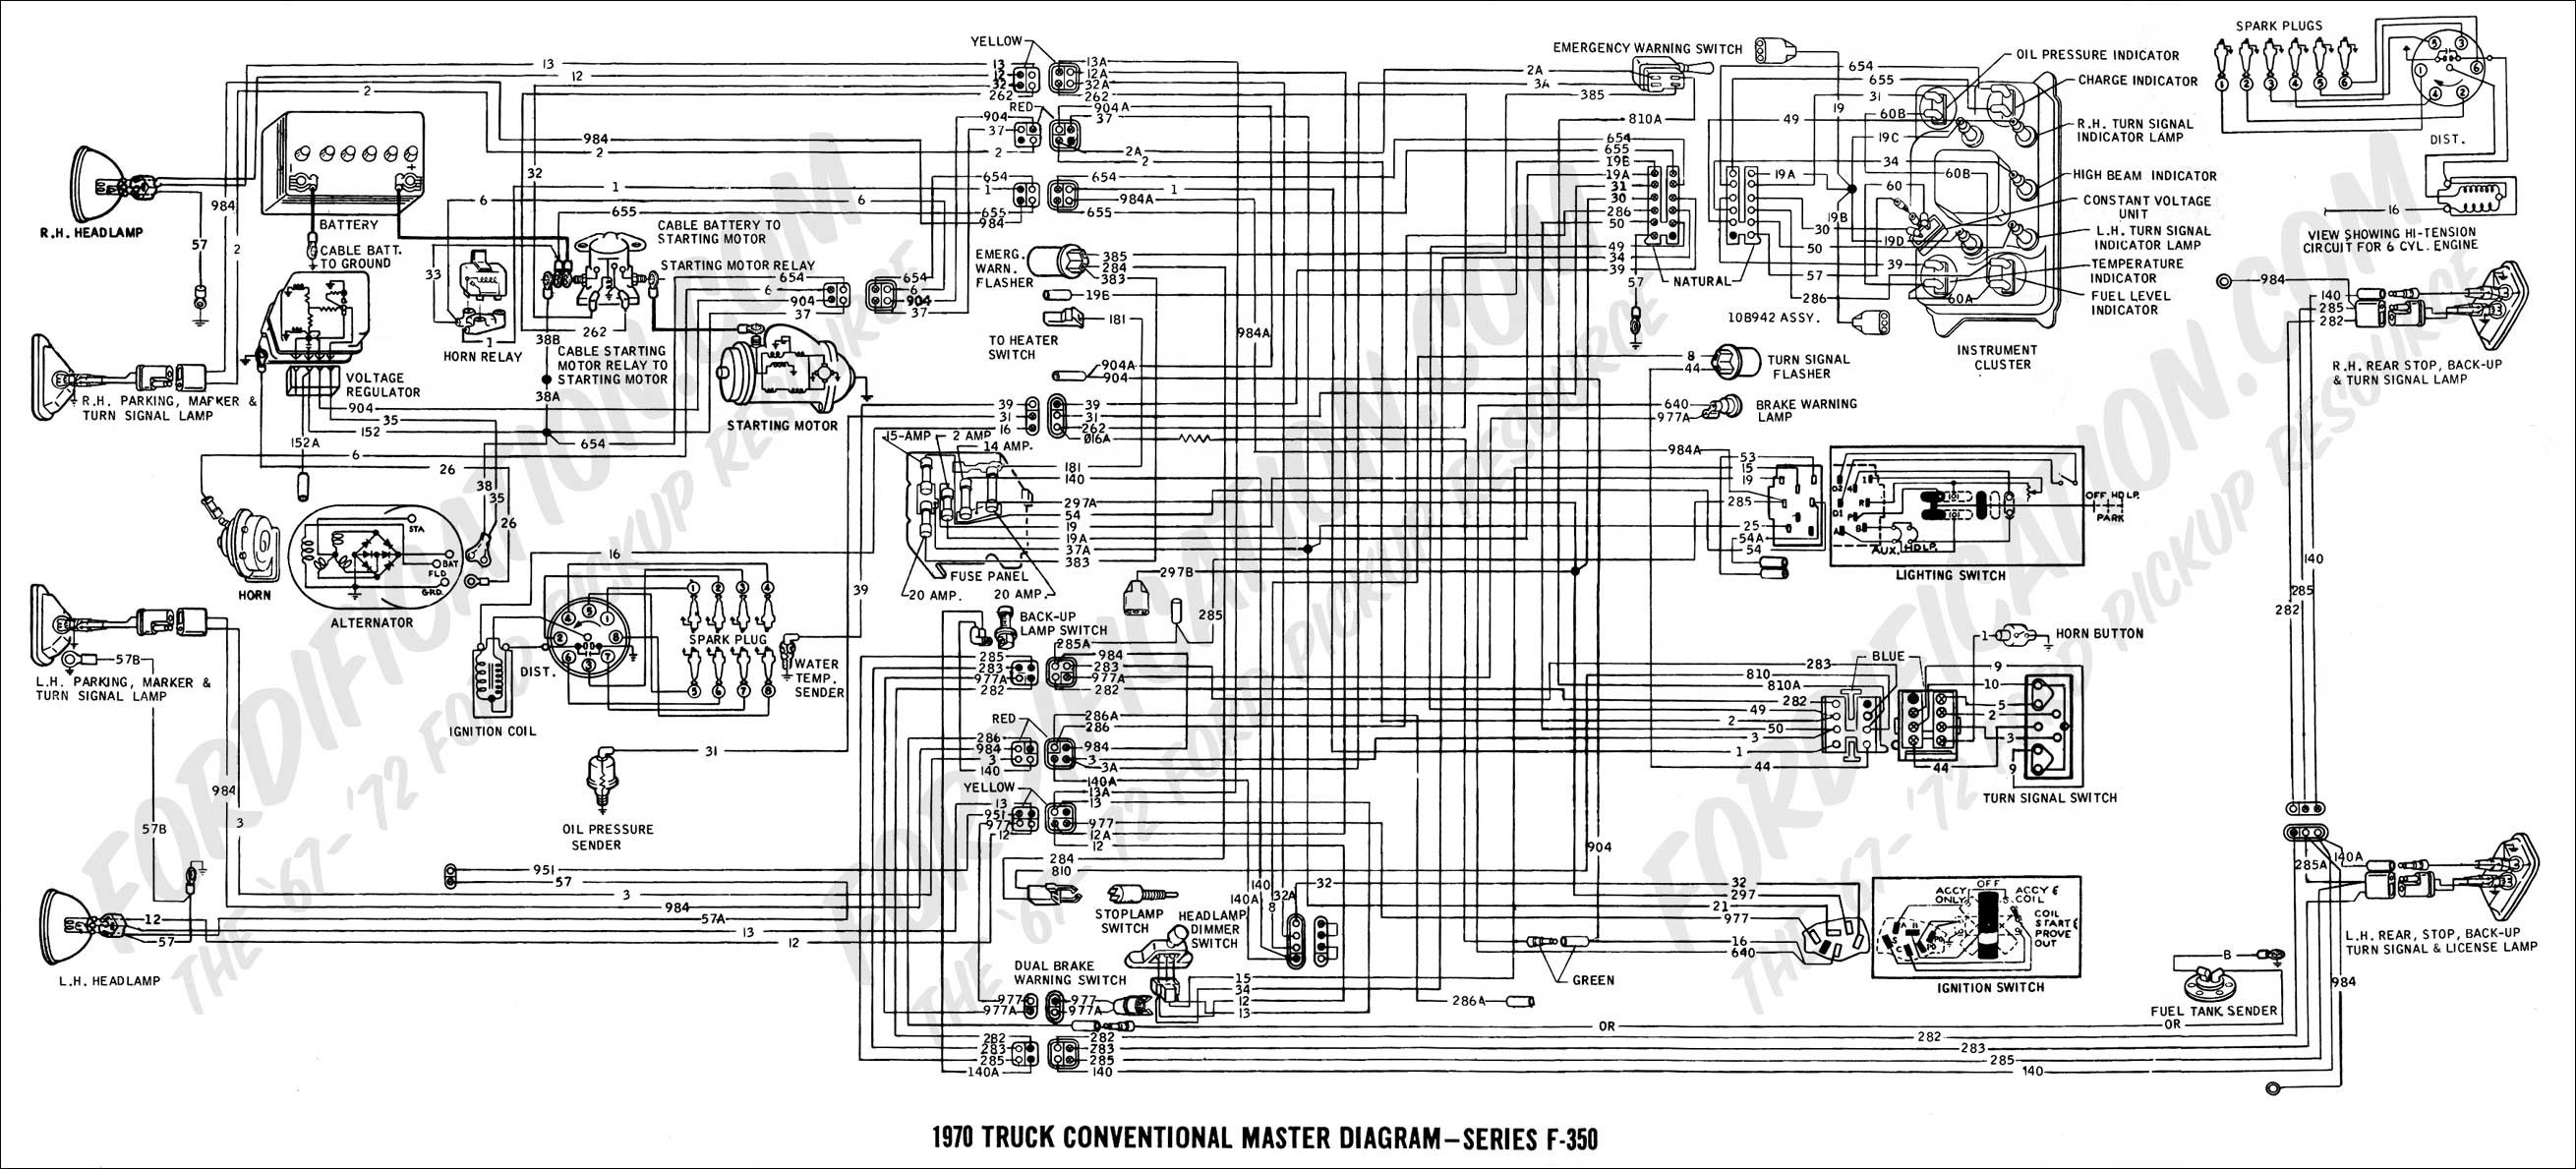 1996 ford F250 Tail Light Wiring Diagram ford Transit Wiring Diagram 96 1 Wiring Diagrams Konsult Of 1996 ford F250 Tail Light Wiring Diagram